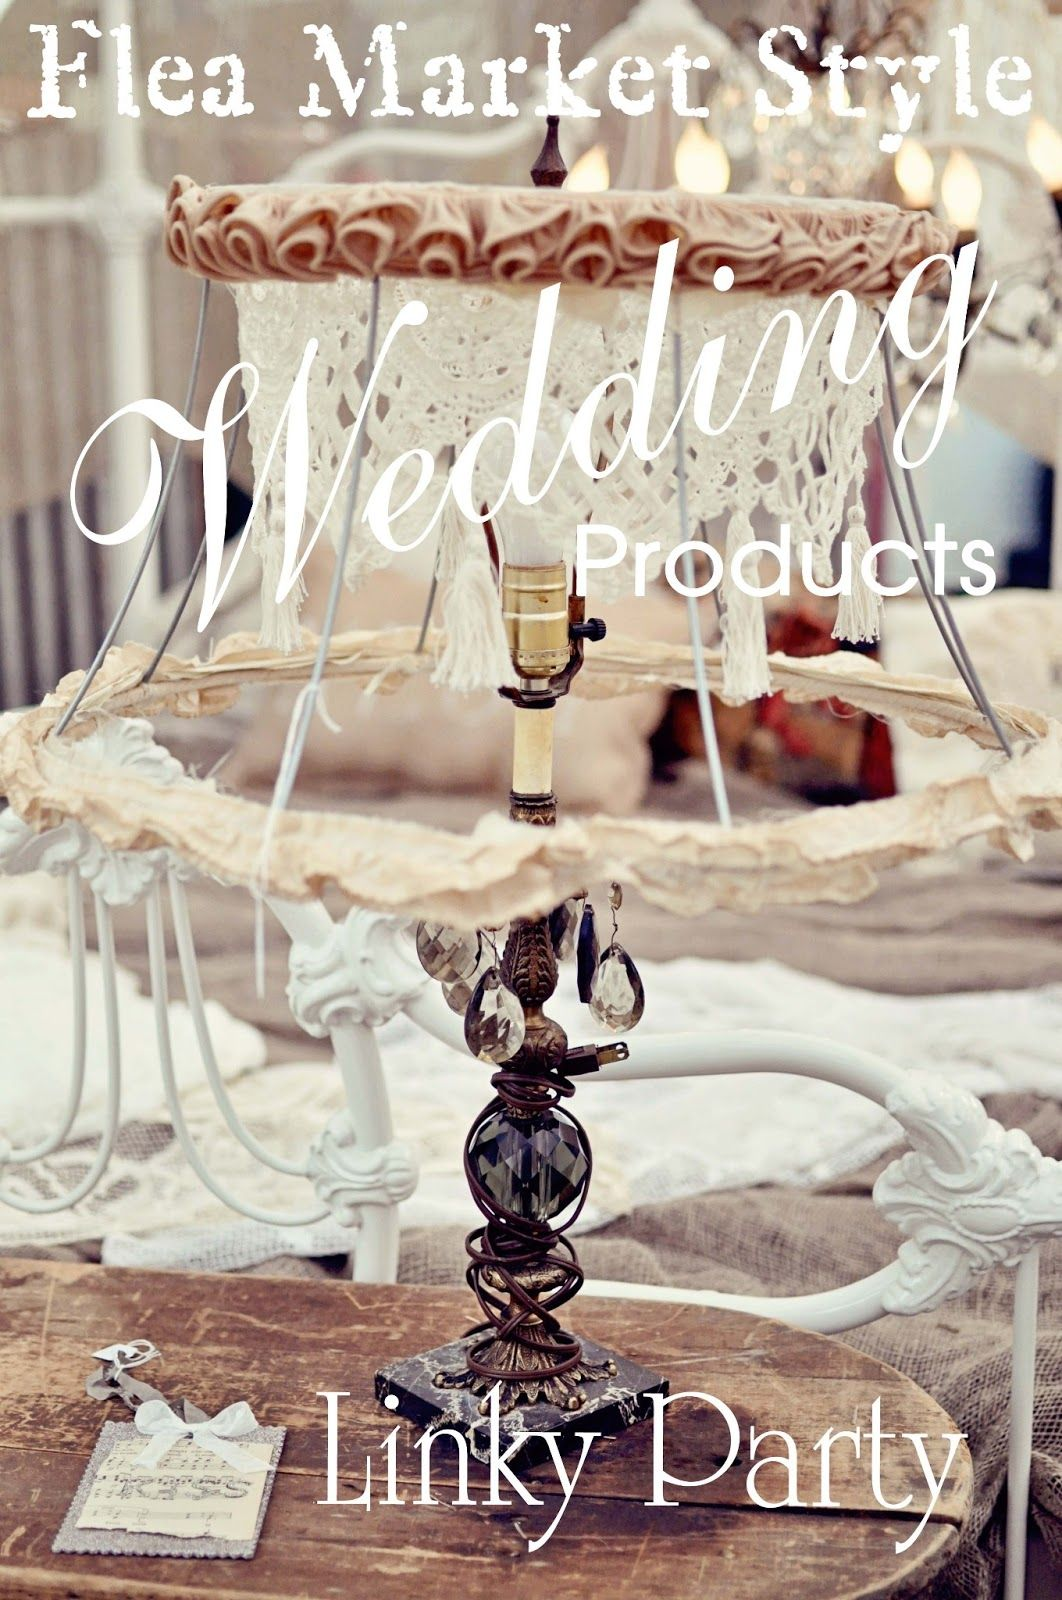 Counting Your Blessings Flea Market Style Wedding Marketing Flea Market